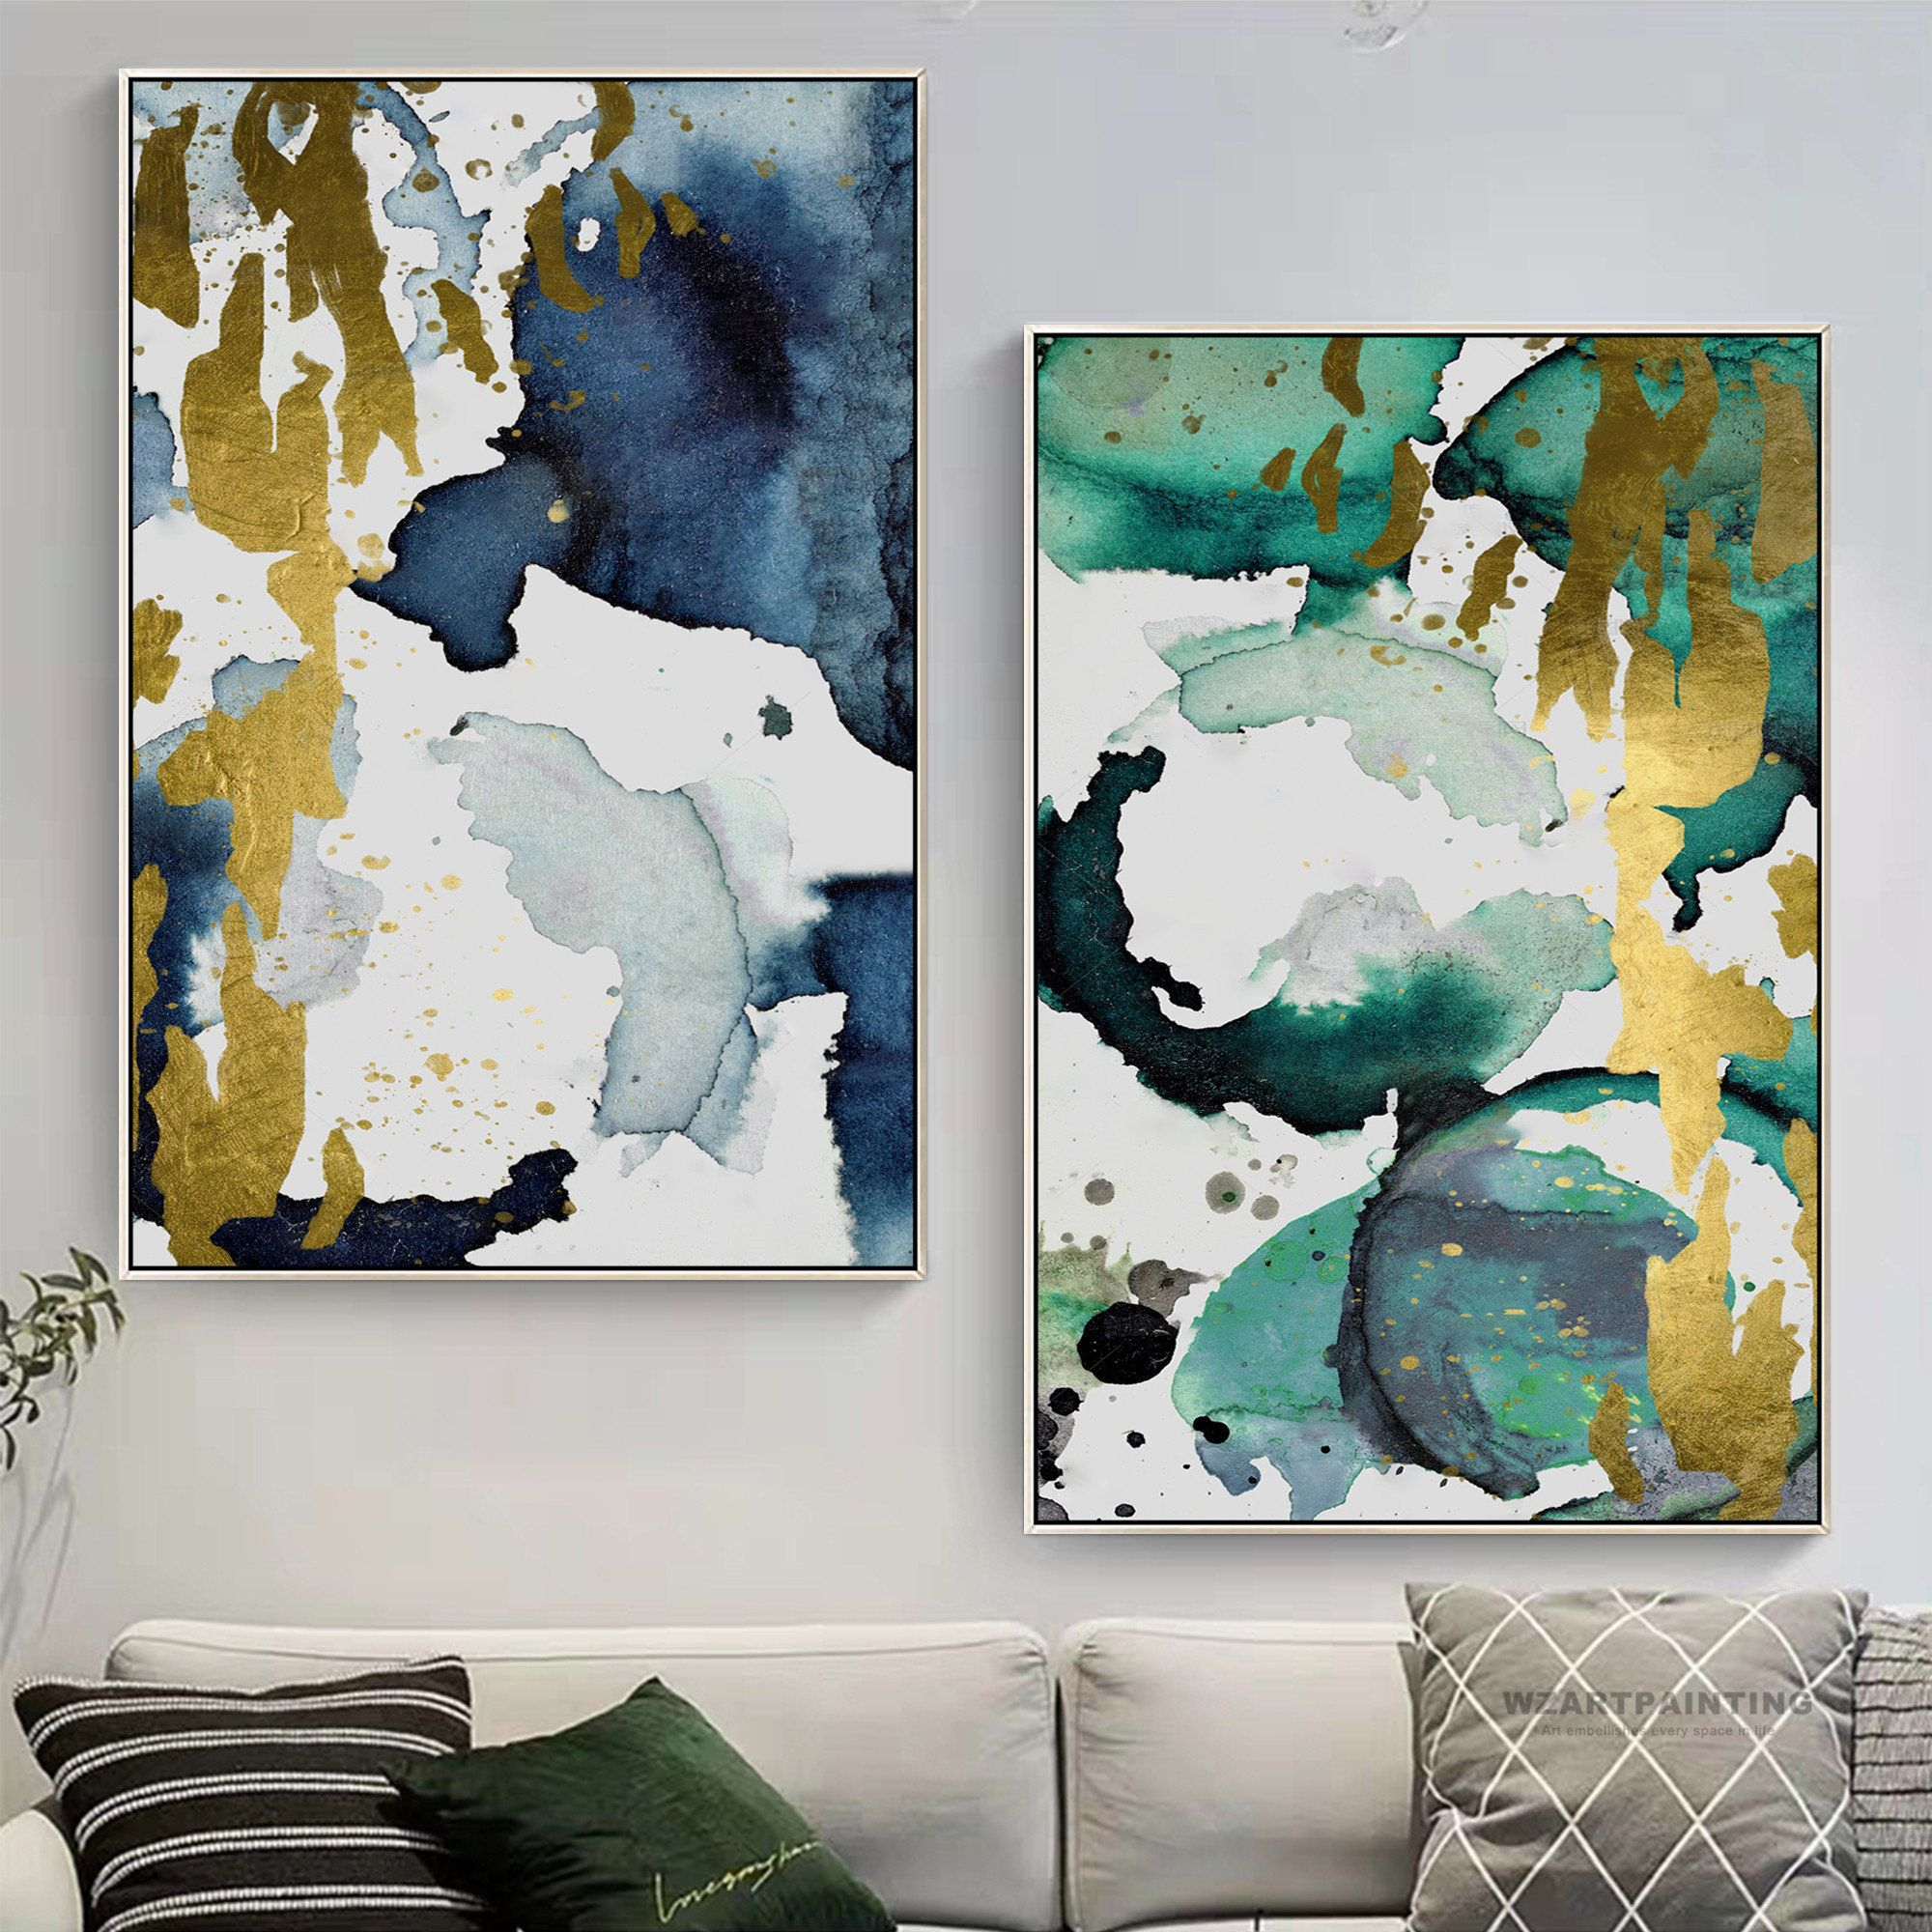 Framed Wall Art Set Of 2 Prints Abstract Gold Green Navy Blue Print Painting Gold Art Pictures On Canvas Wall Art P Framed Wall Art Sets Wall Art Sets Abstract